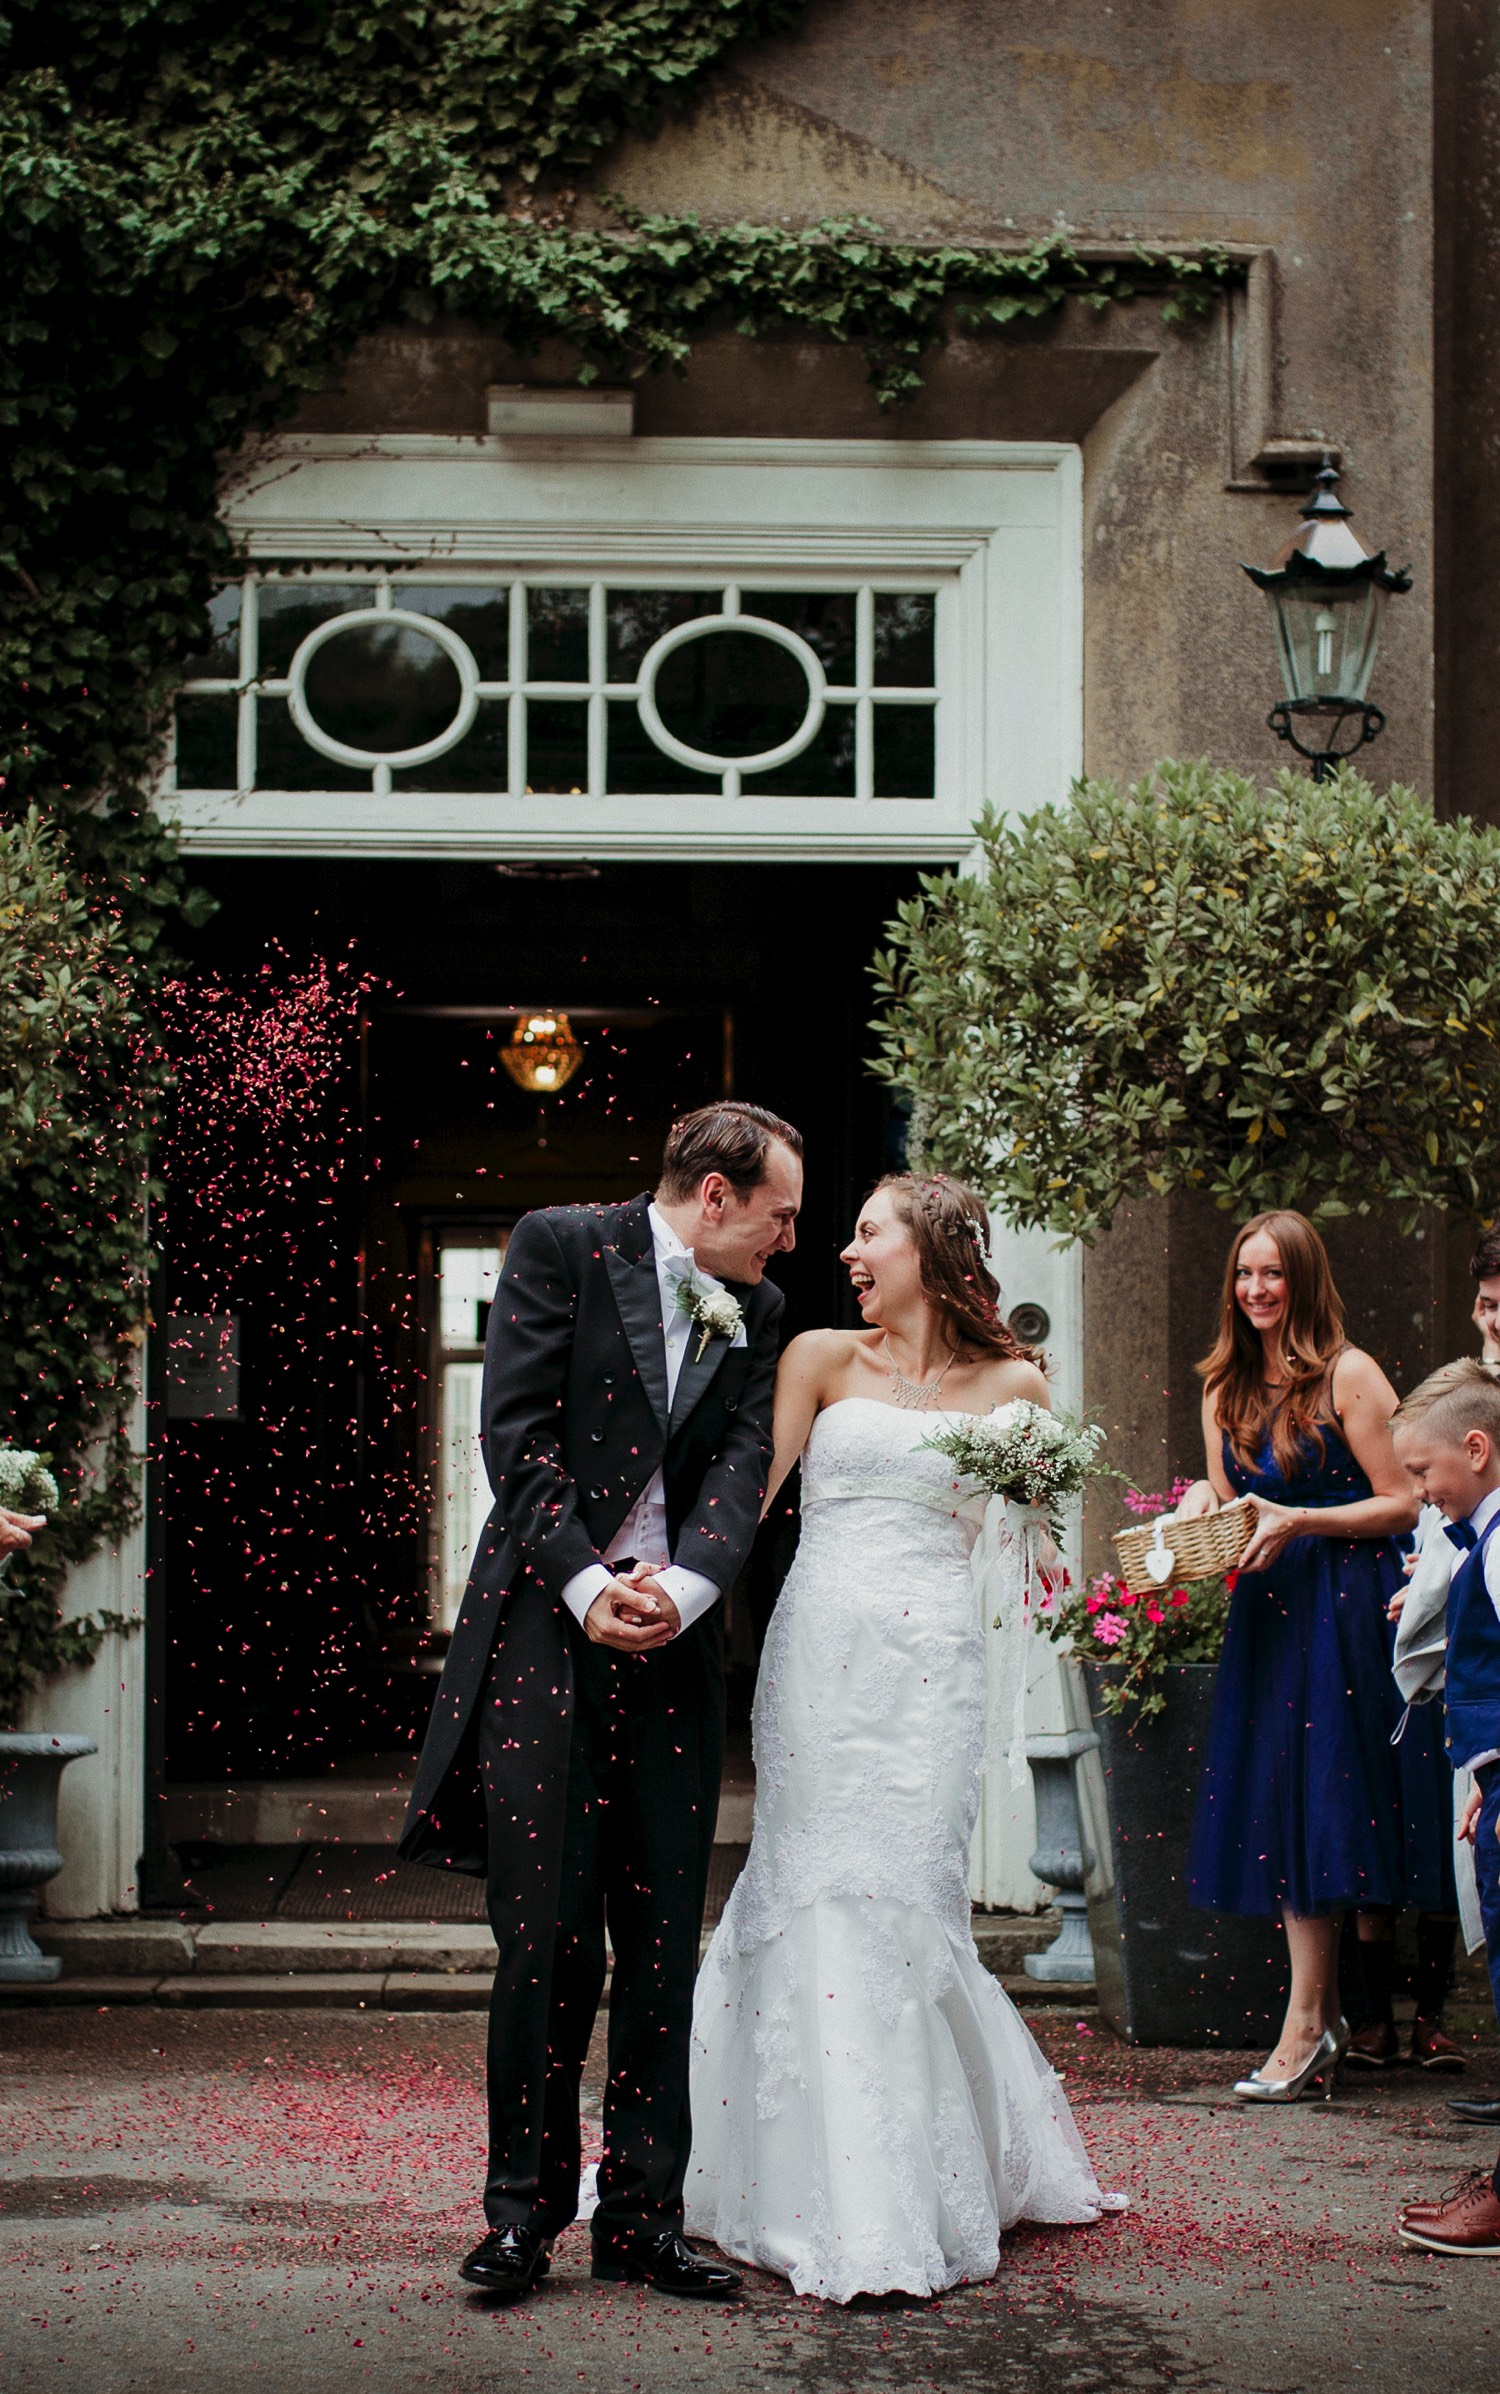 Offley-Place-Country-House-Hotel-Hitchin-wedding-JJ23.jpg